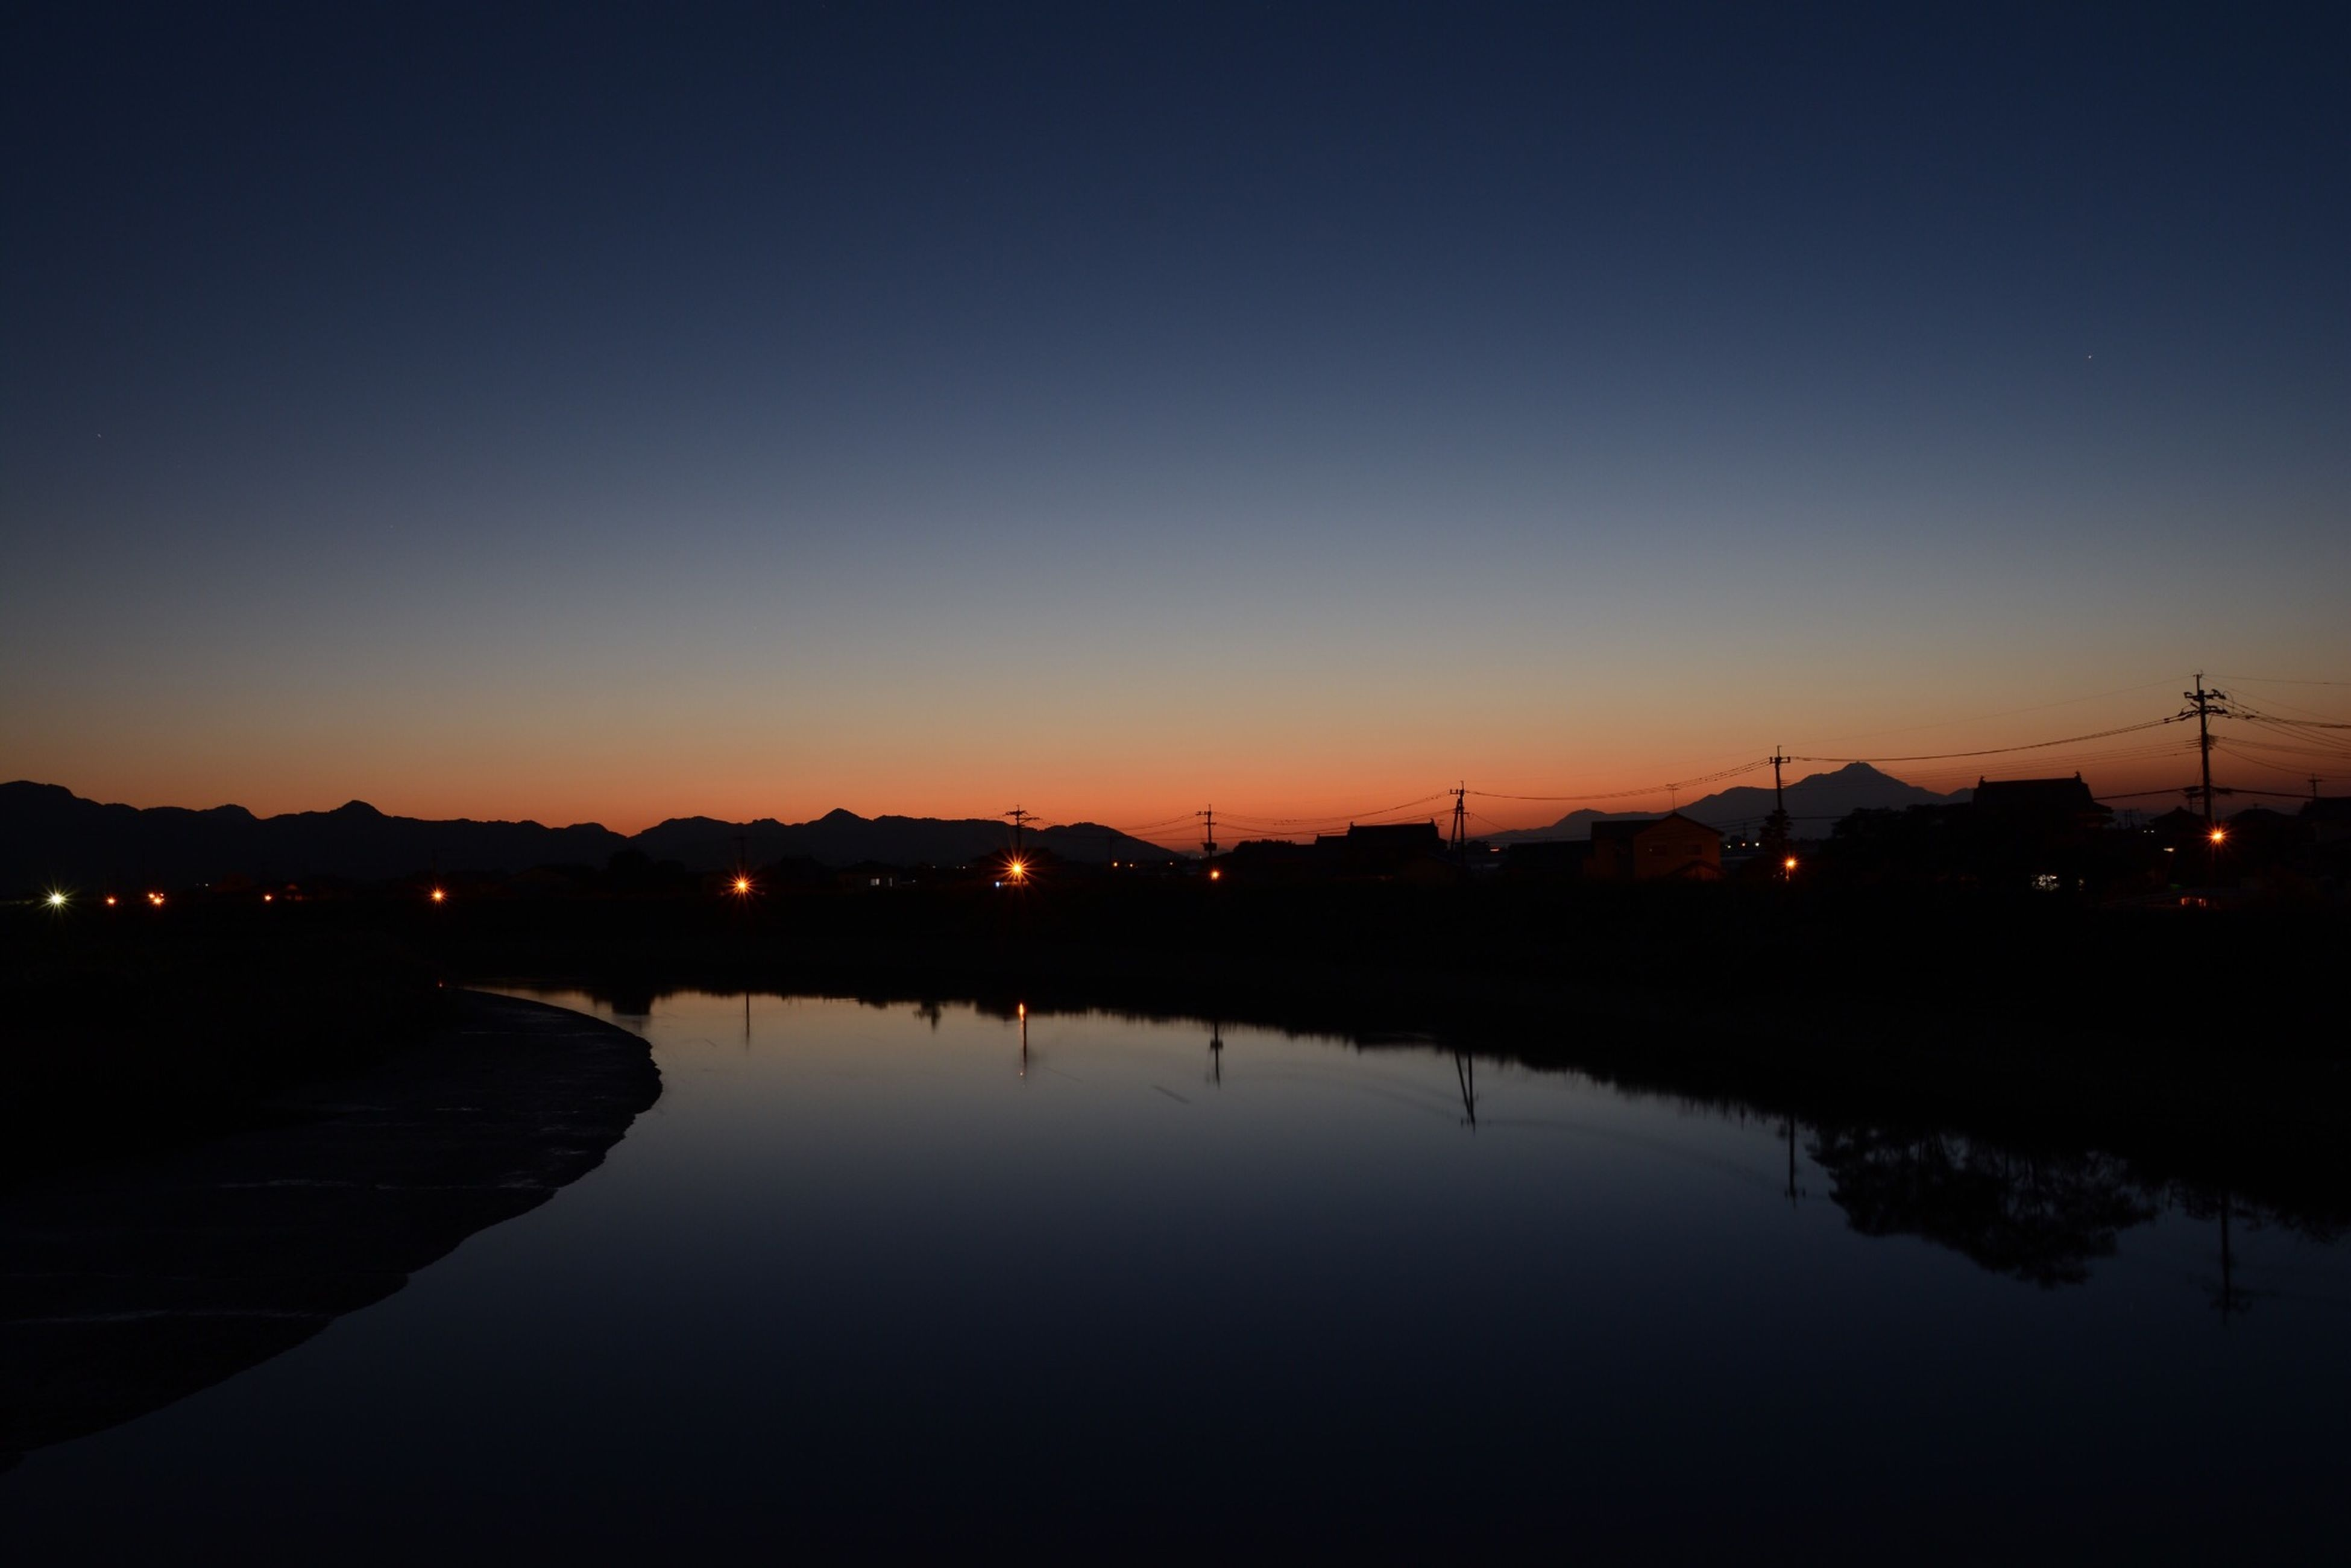 reflection, sunset, illuminated, water, clear sky, silhouette, built structure, copy space, architecture, waterfront, dusk, connection, tranquility, night, sky, river, standing water, building exterior, tranquil scene, street light